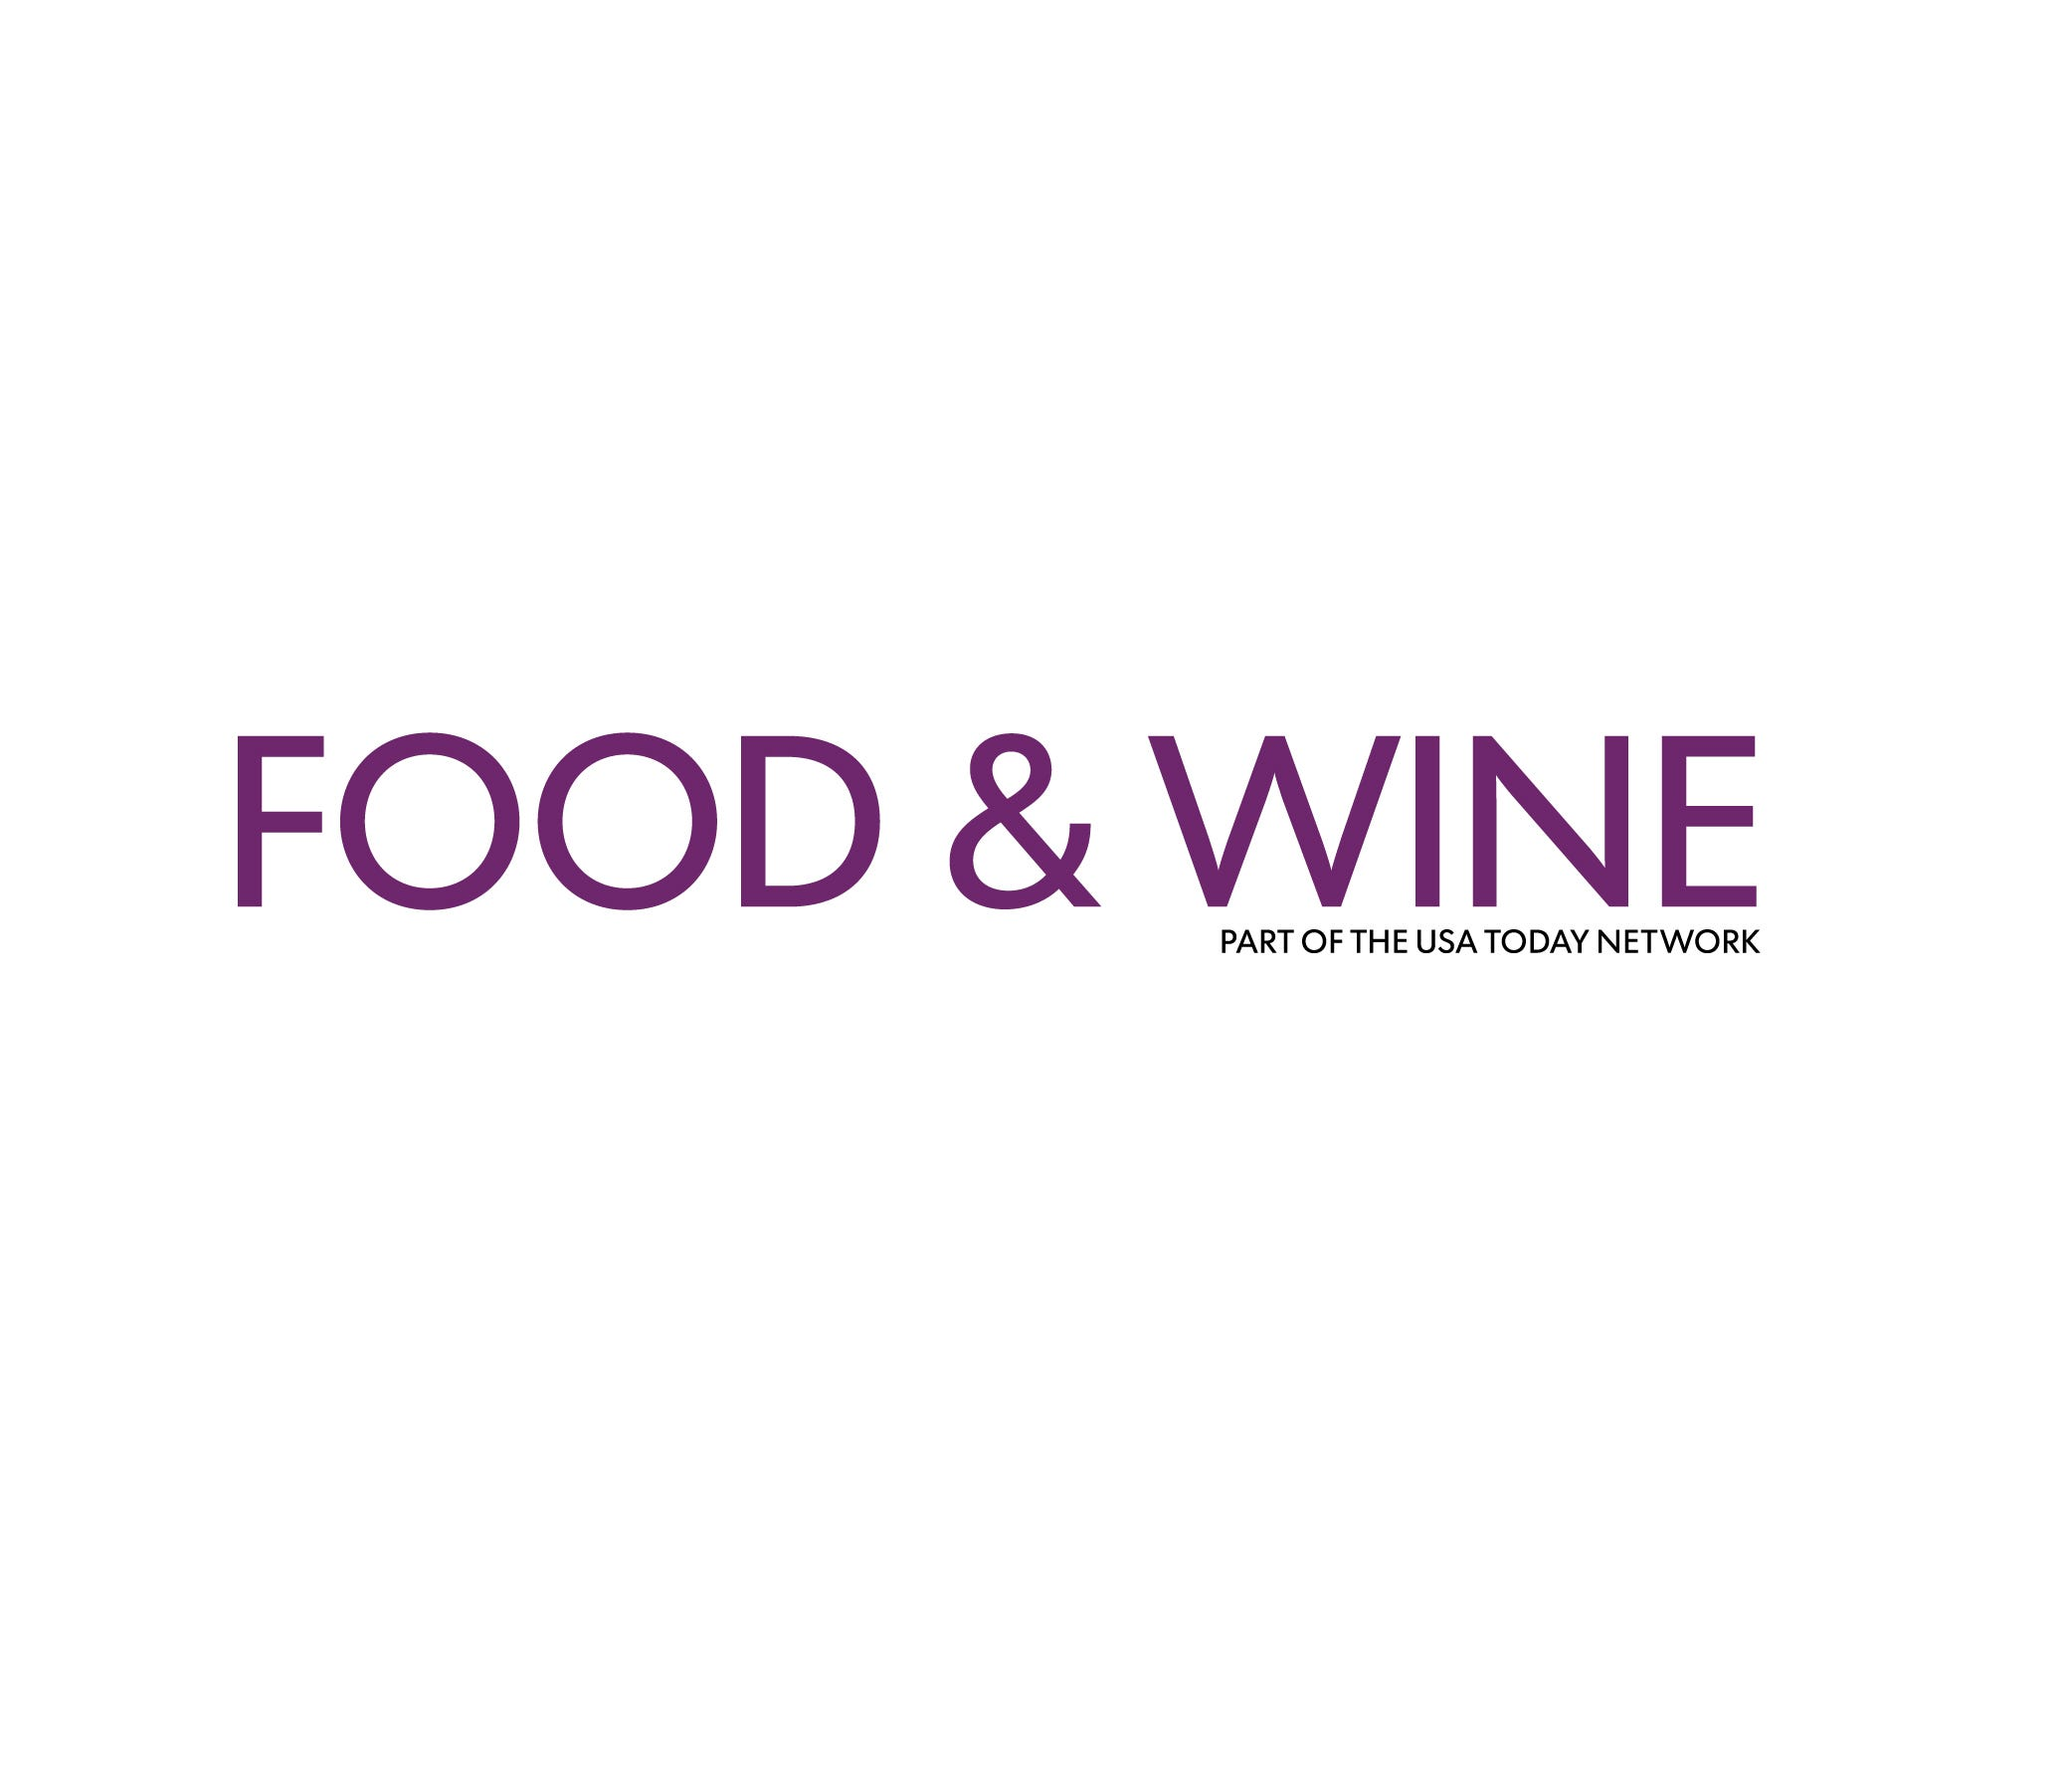 USA TODAY hosts unique food and wine events.